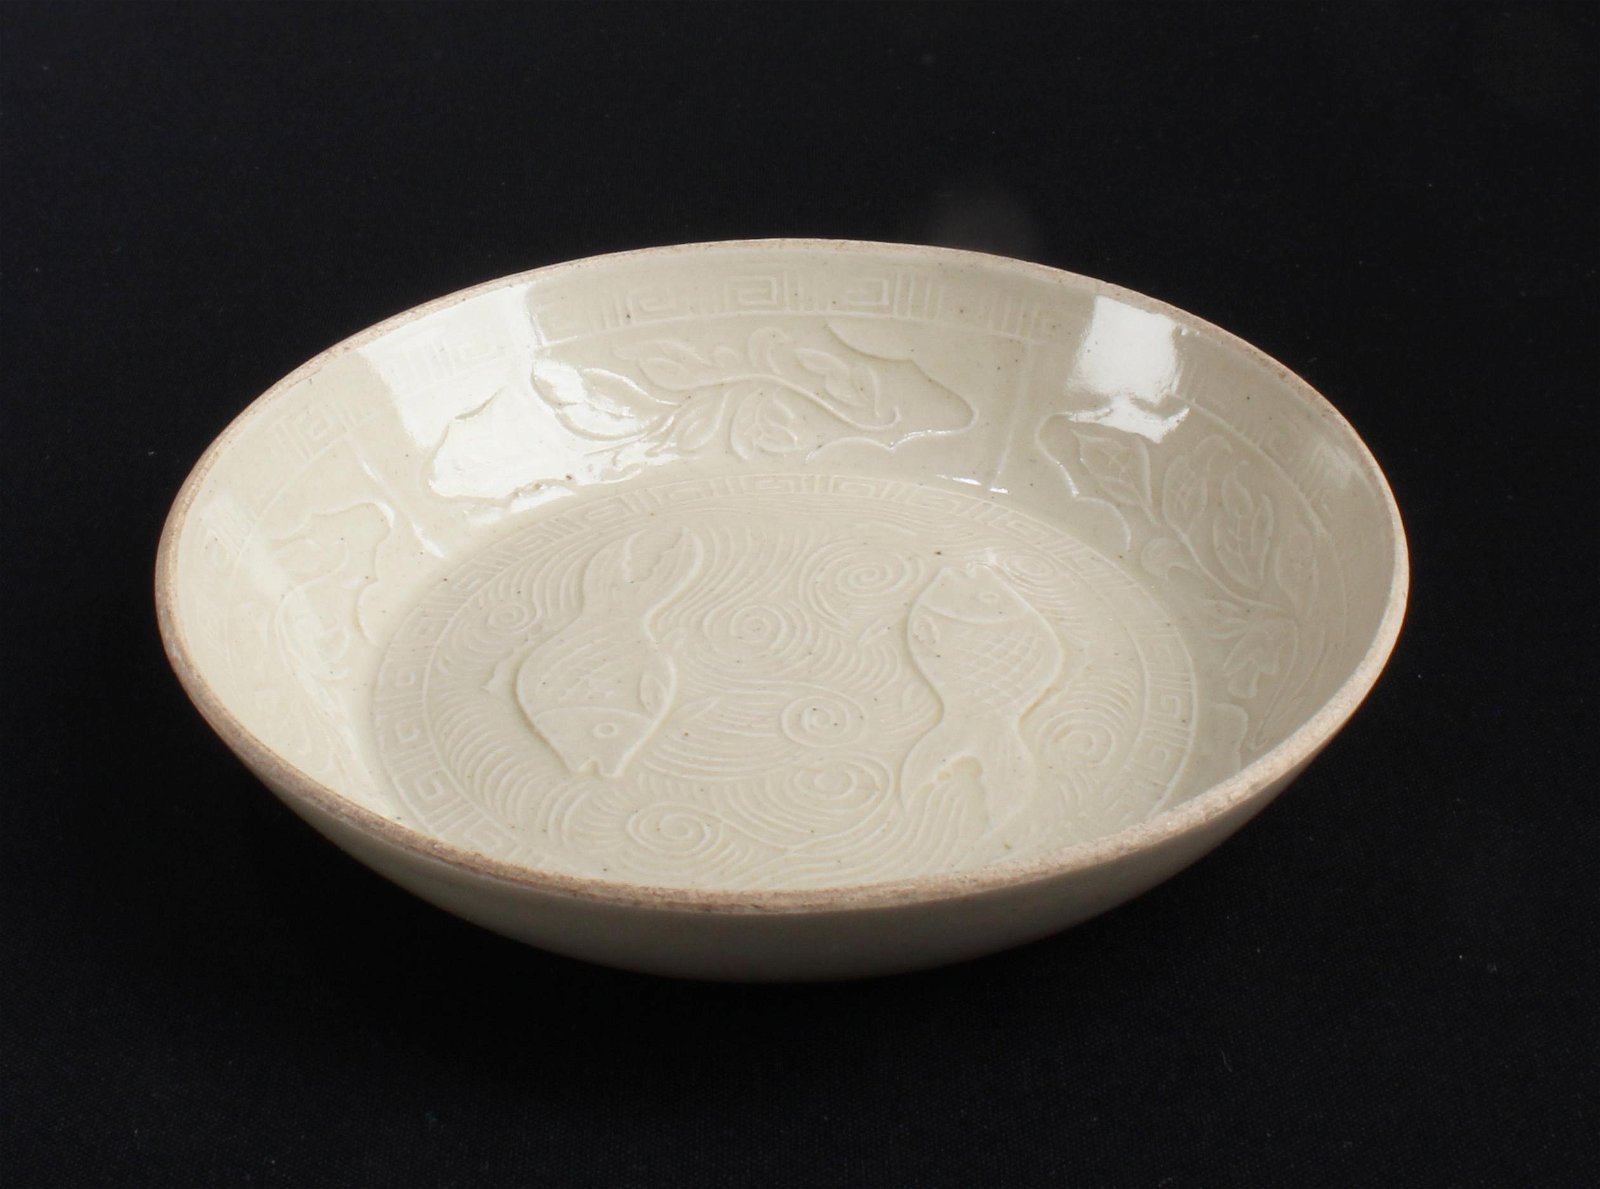 Chinese Dingyao Saucer